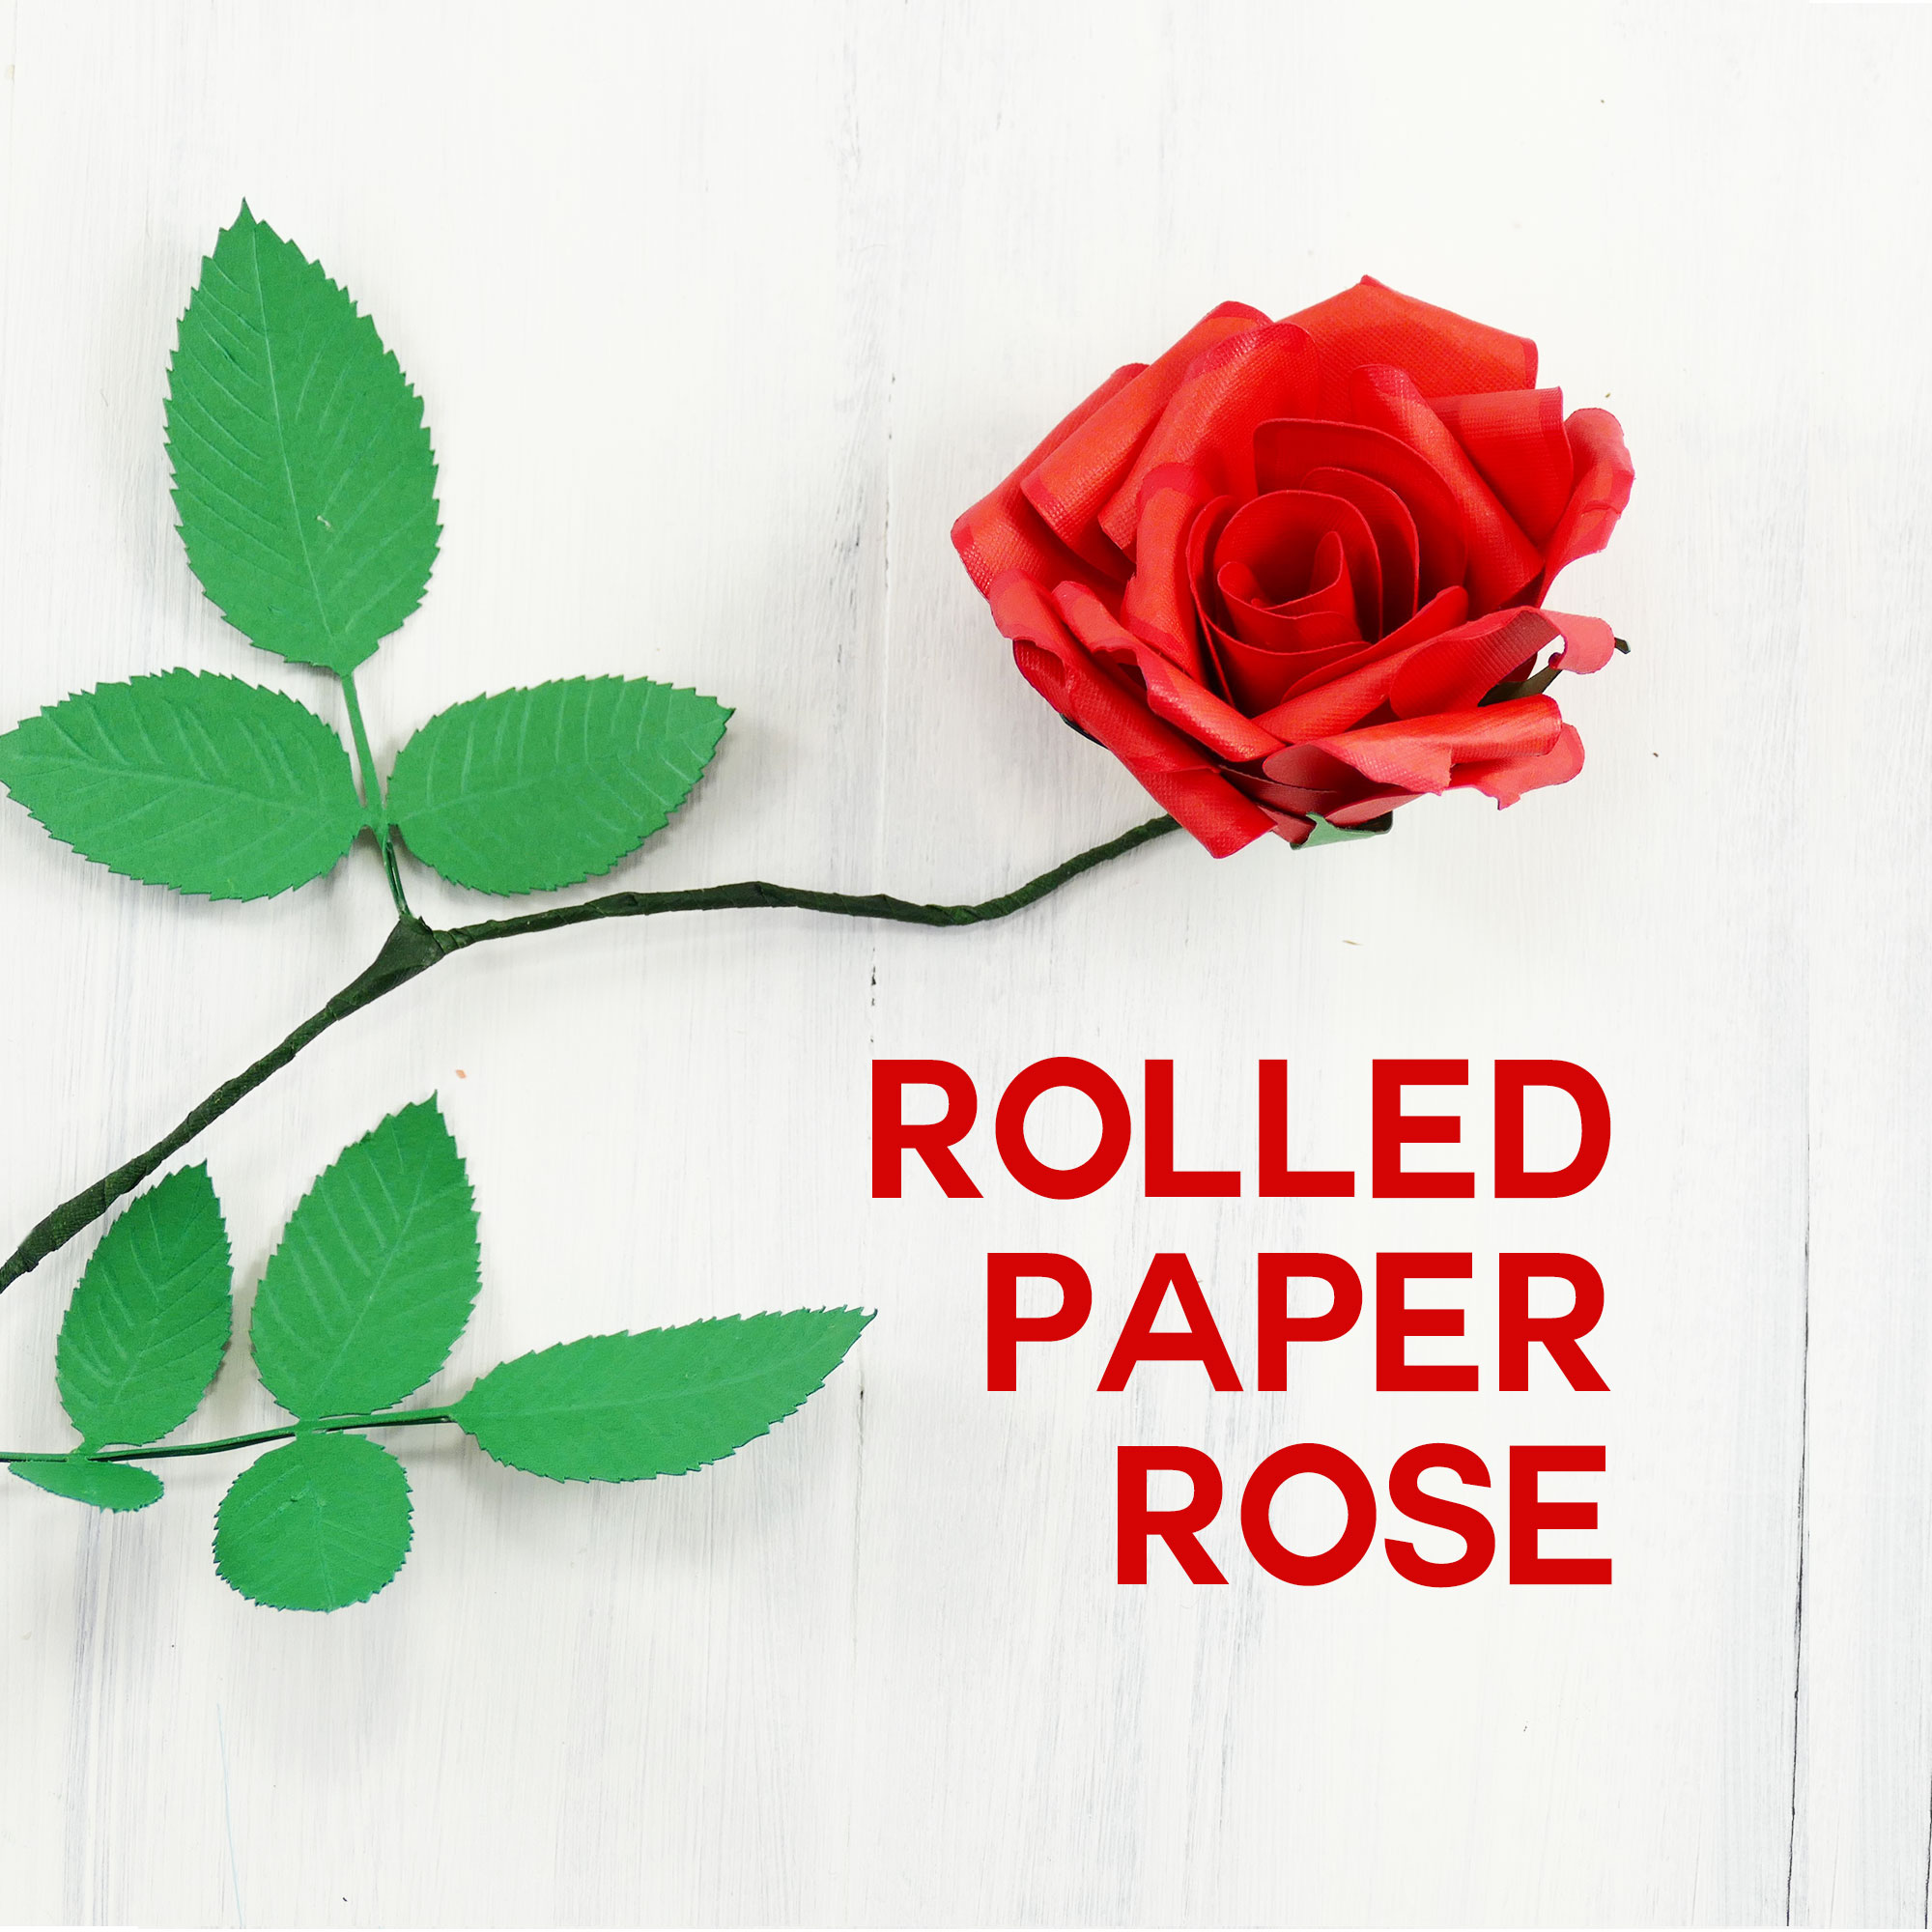 Rolled paper rose tutorial fun realistic jennifer maker for Rolled paper roses template